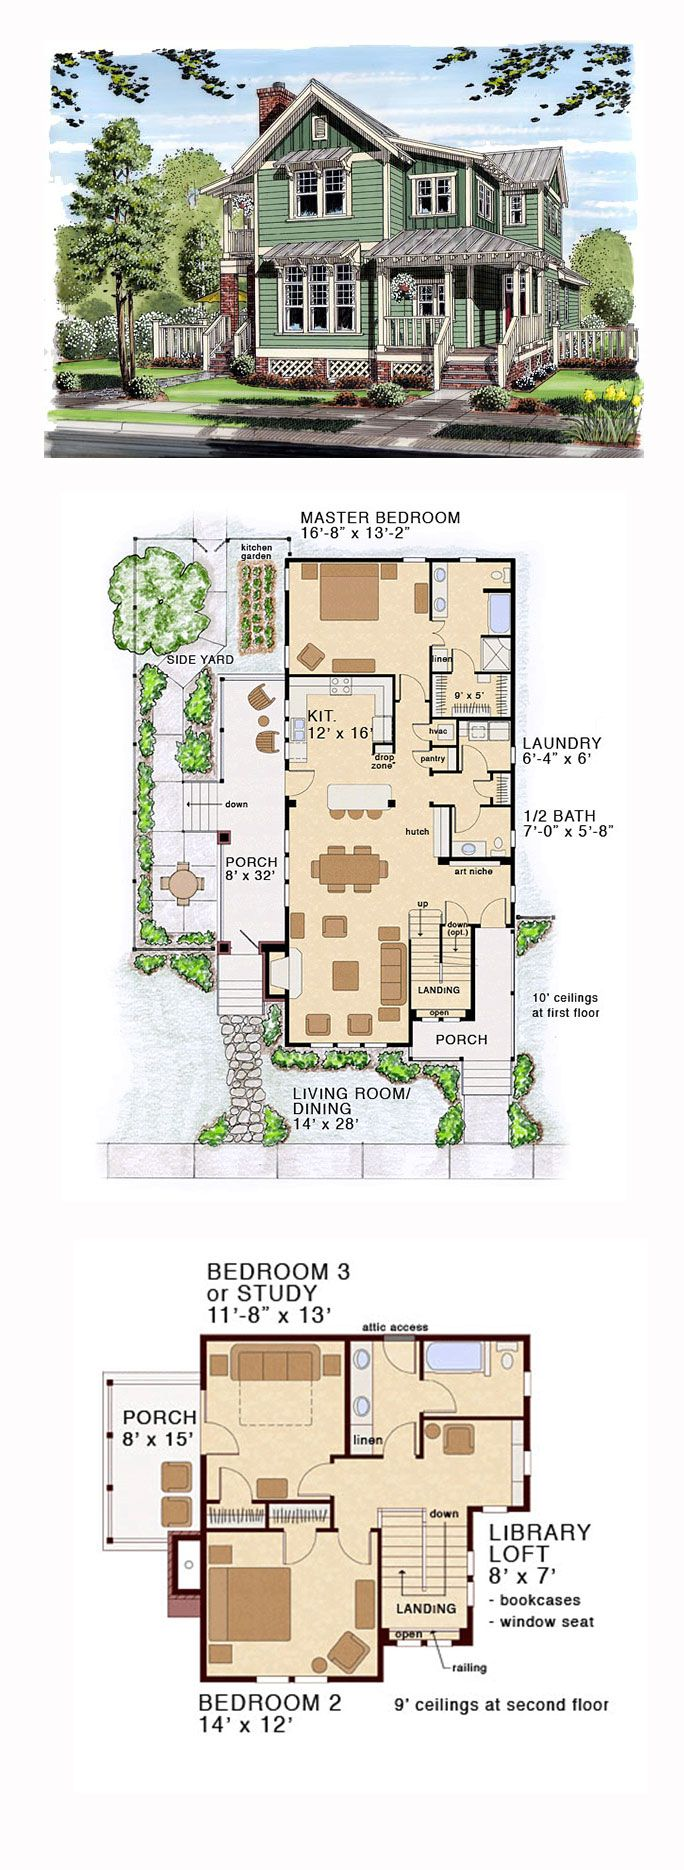 25 best ideas about coastal house plans on pinterest beach house floor plans lake house plans and beach homes - Coastal House Plans